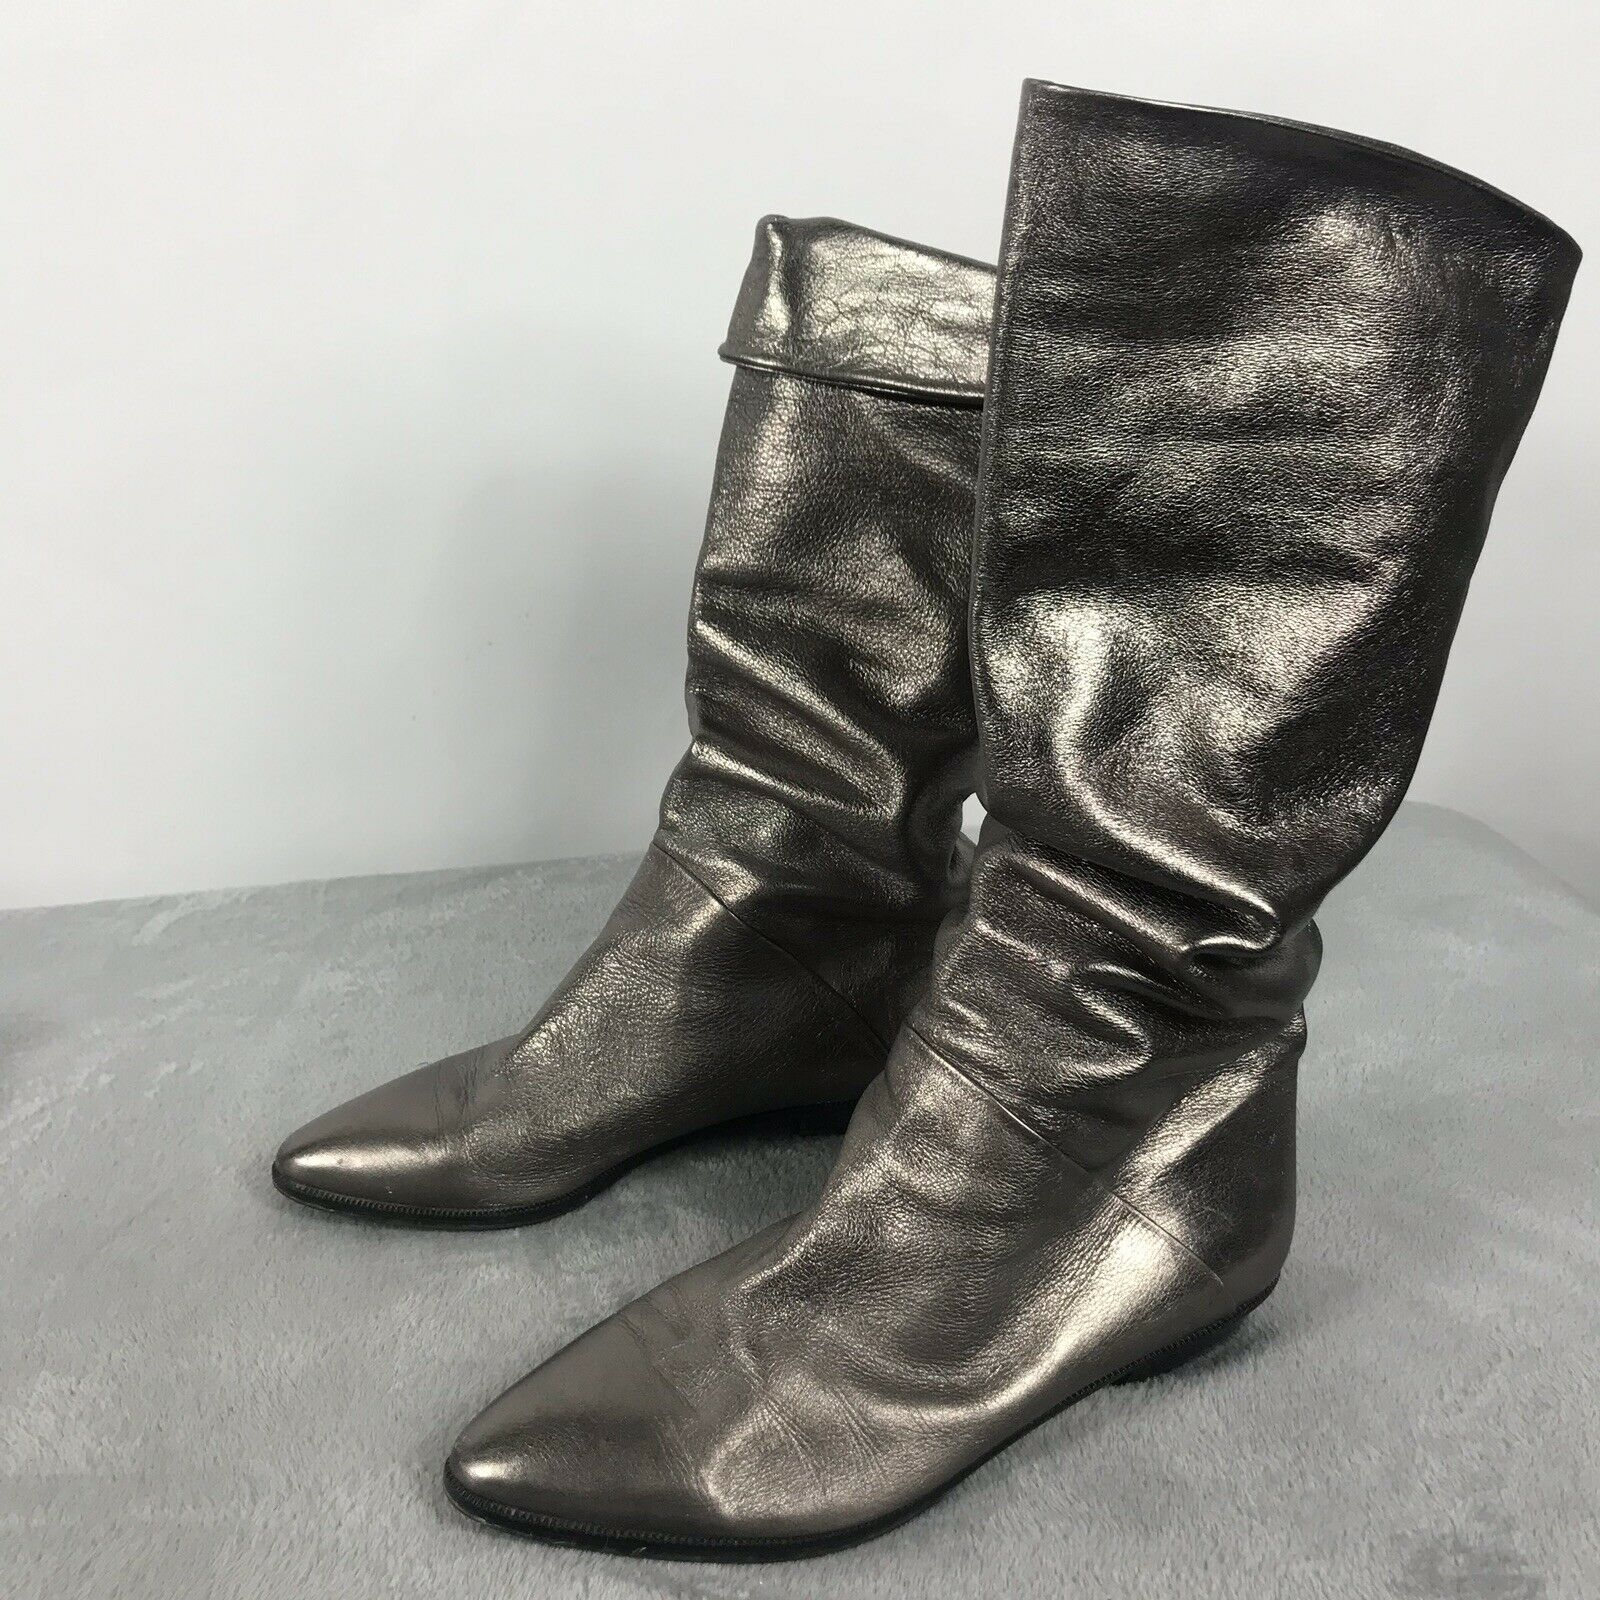 Vintage Womens Pewter Metallic Leather Knee High Slouch Fold over Flat Boots 8M